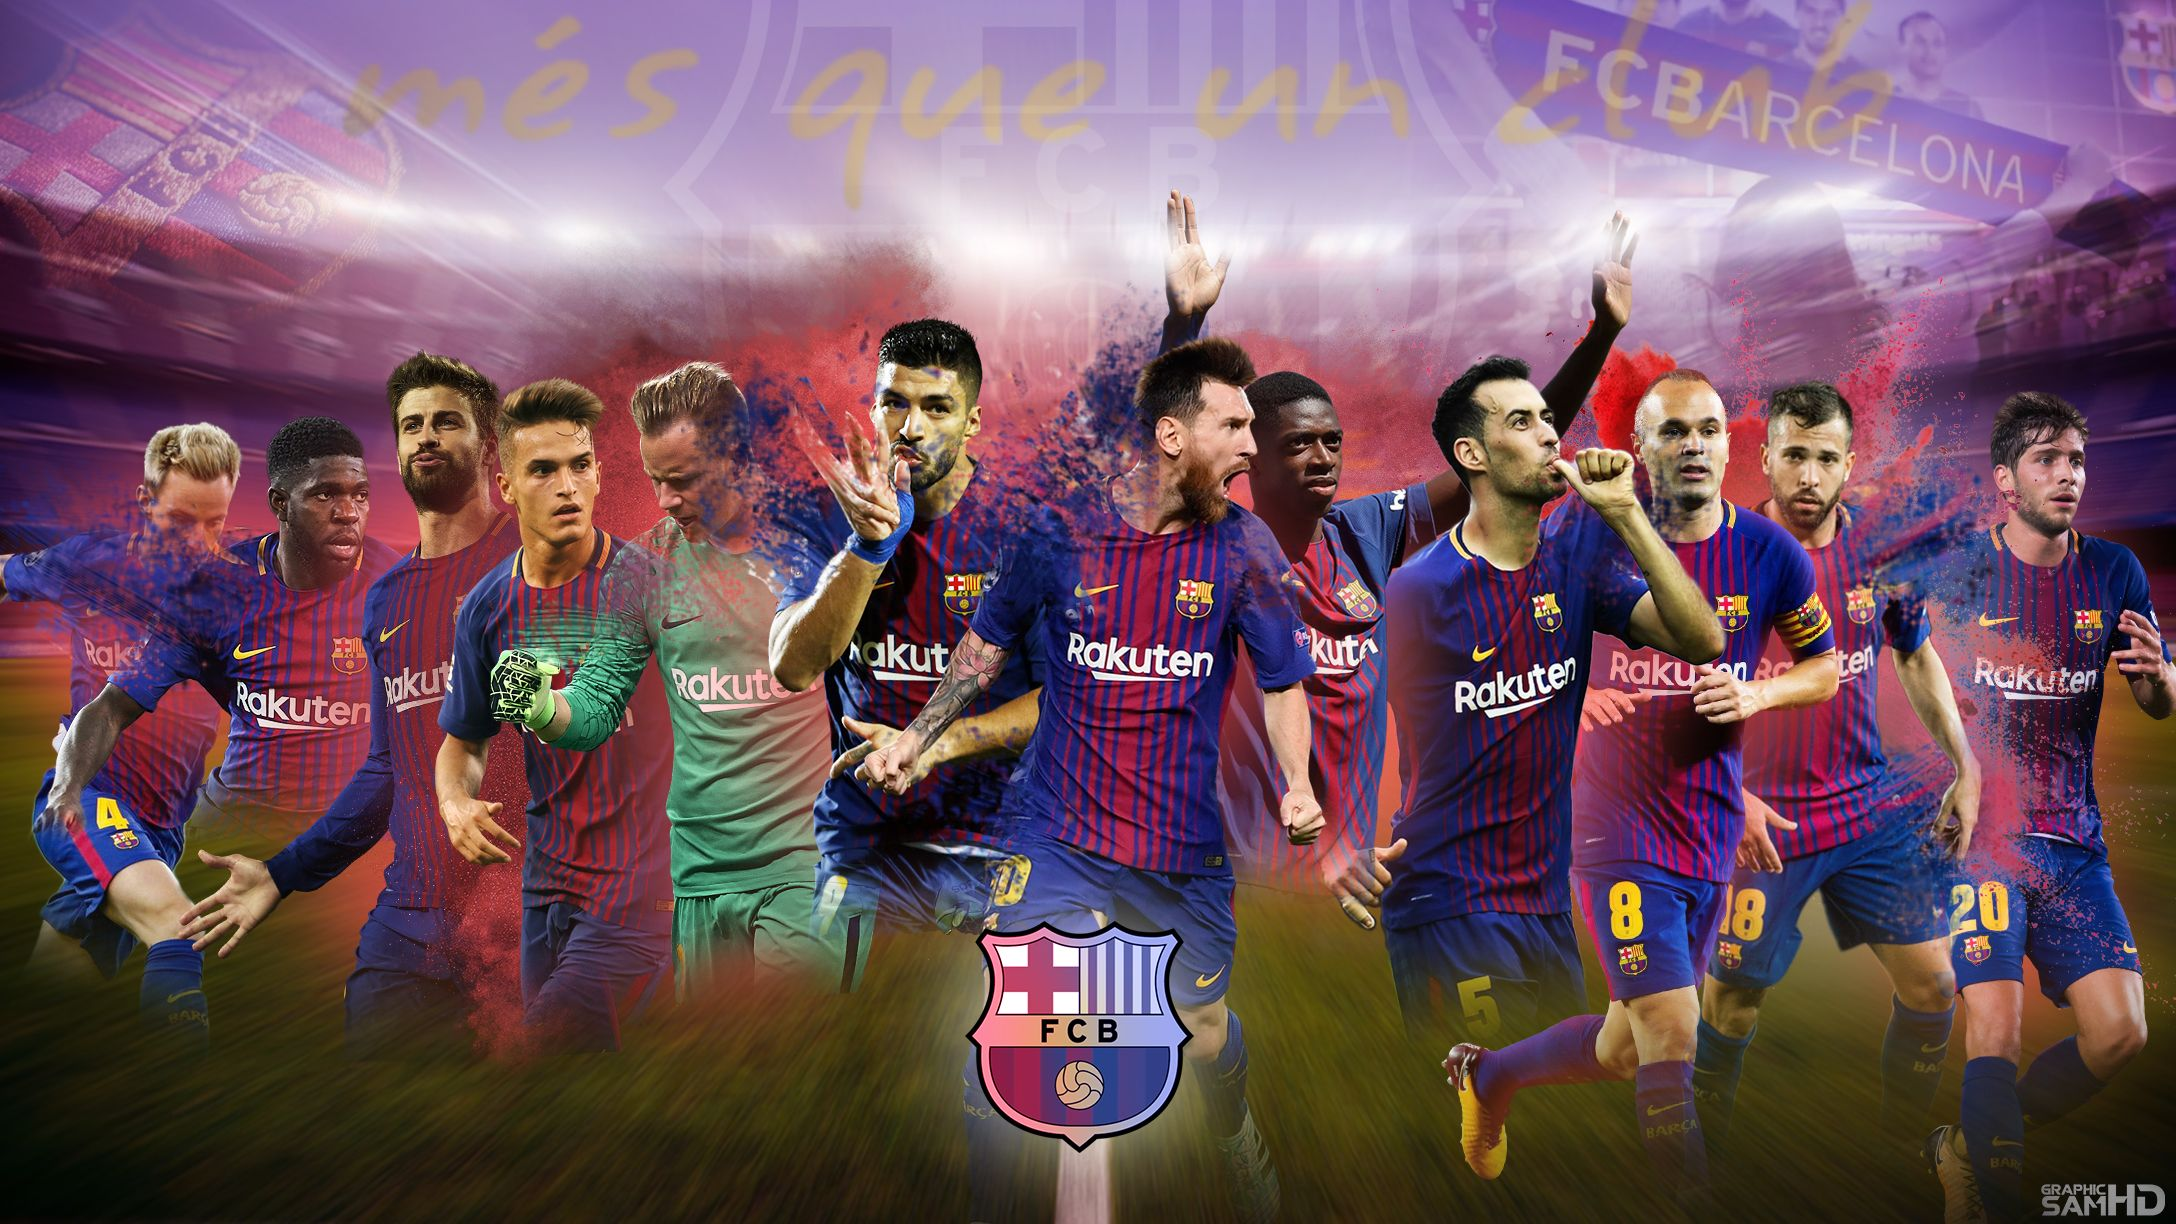 Fc Barcelona Desktop Wallpaper 2017/2018 by GraphicSamHD on DeviantArt